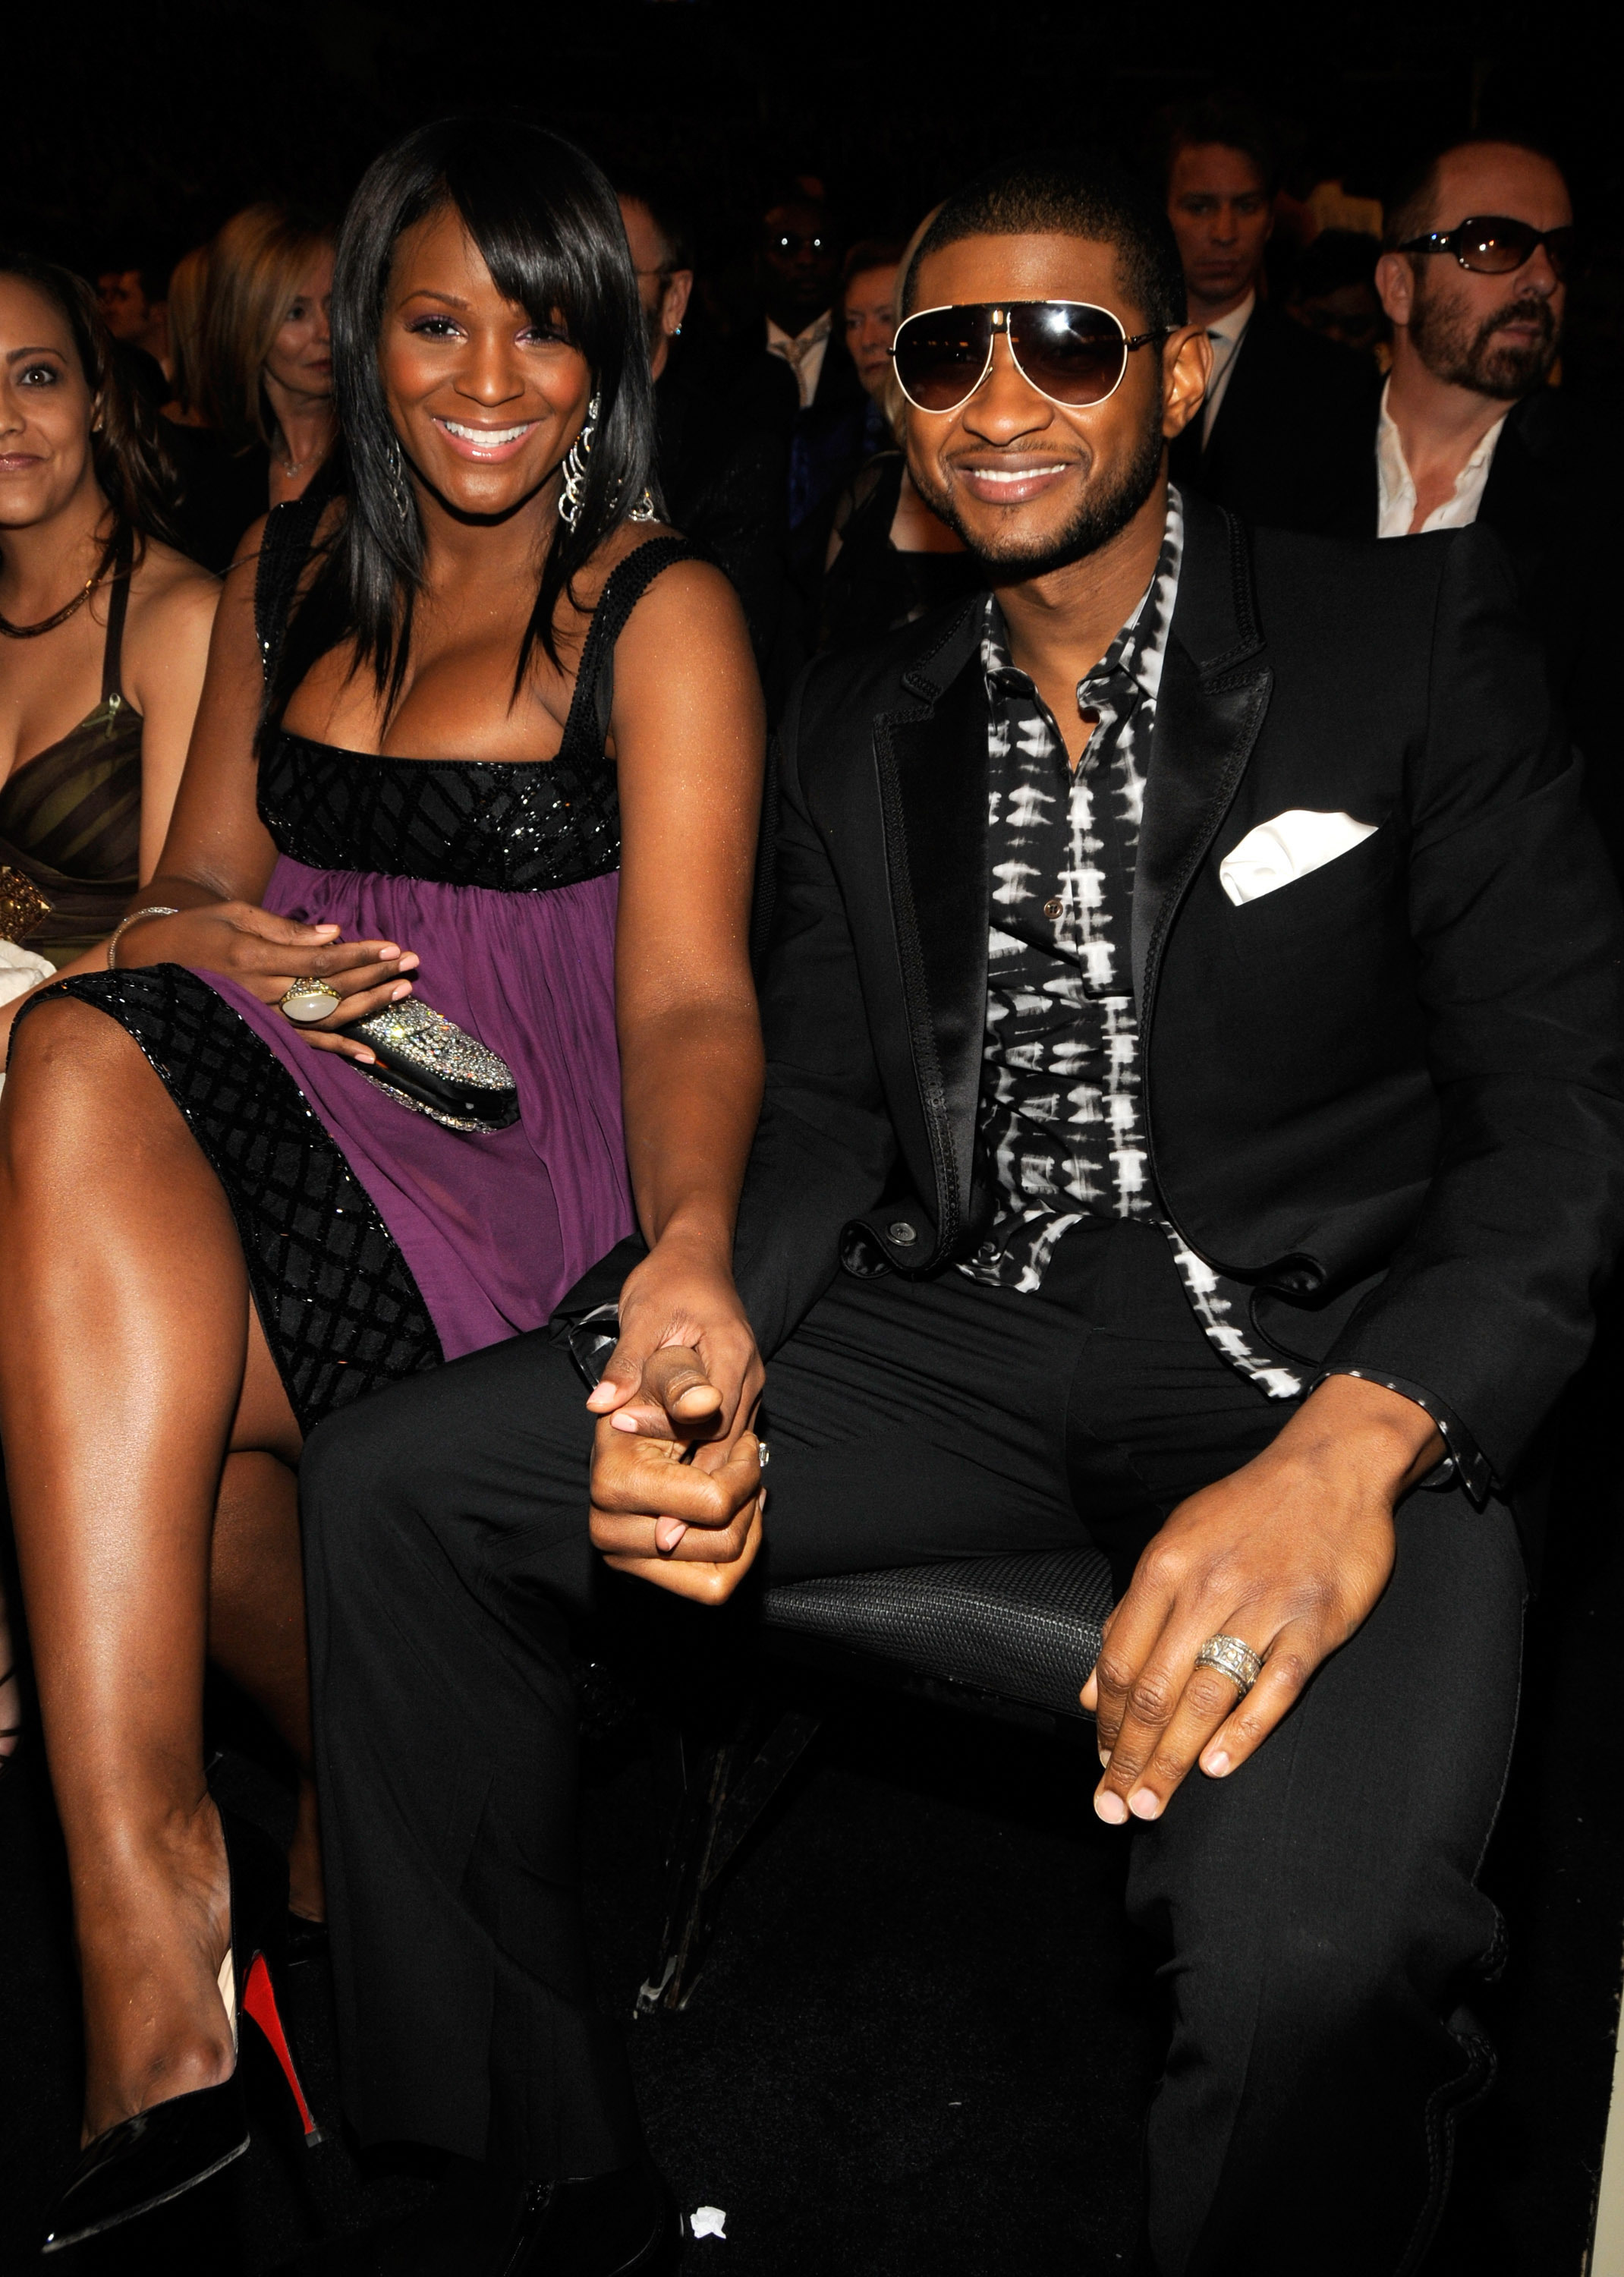 Tamika Foster and Usher at the 50th Annual GRAMMY Awards at the Staples Center in Los Angeles on Feb. 10, 2008.